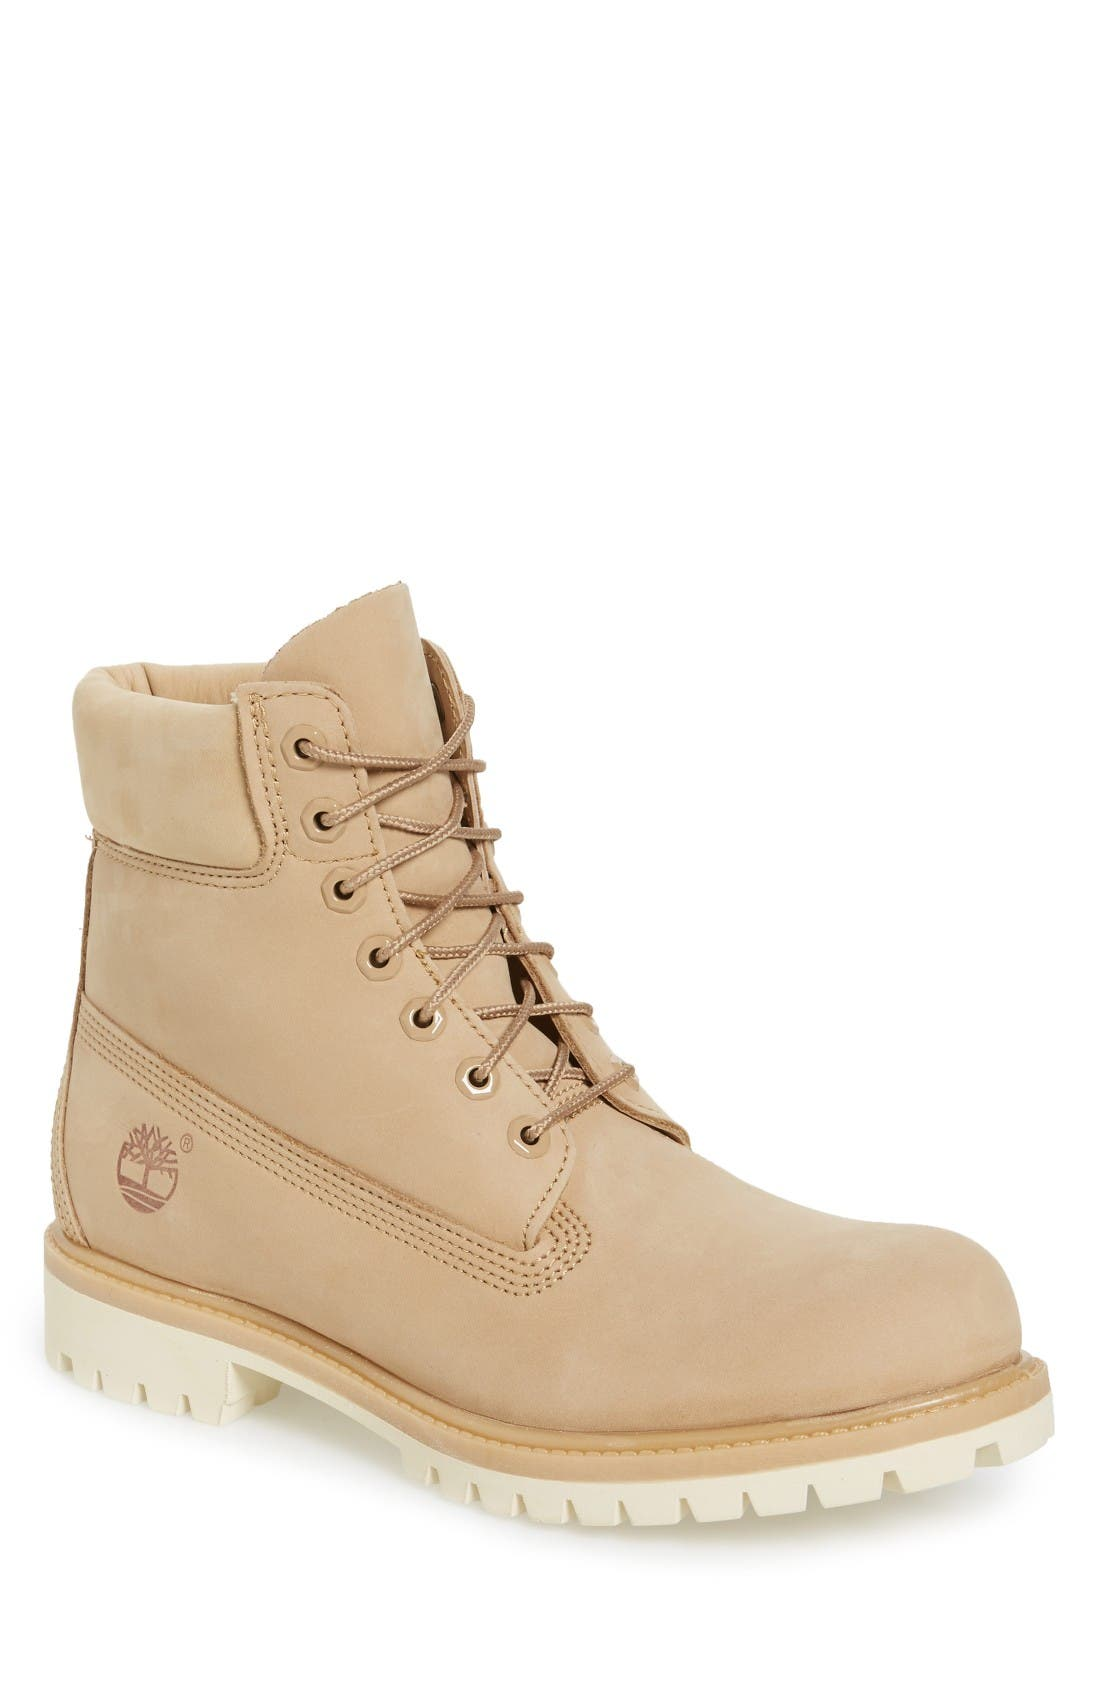 Alternate Image 1 Selected - Timberland 'Six Inch Classic Boots Series - Premium' Boot